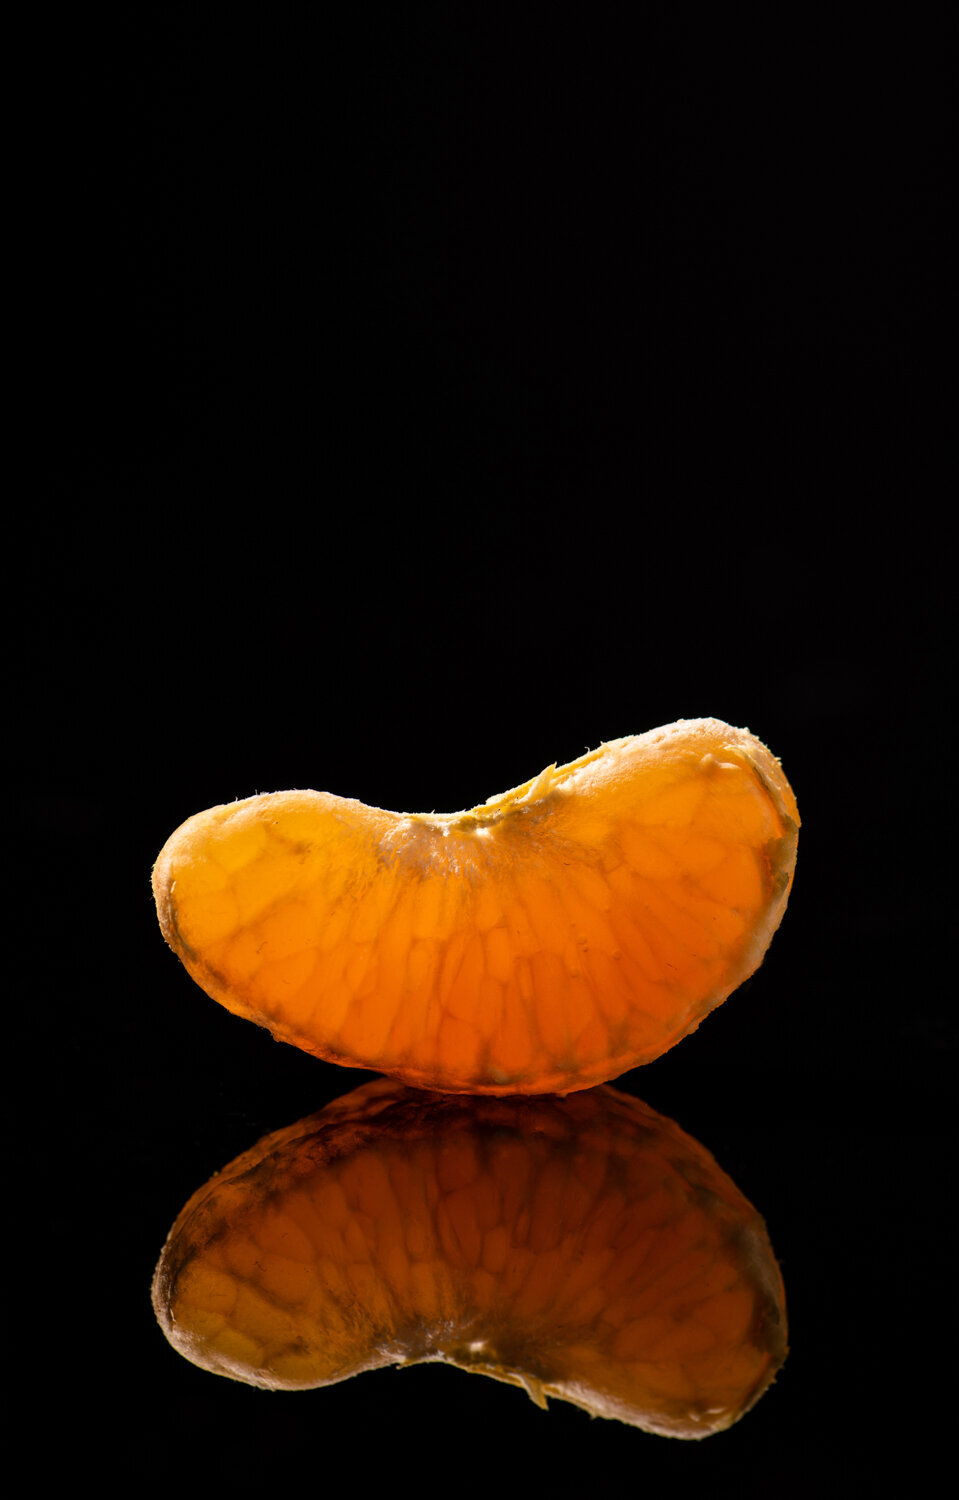 slice of tangerine